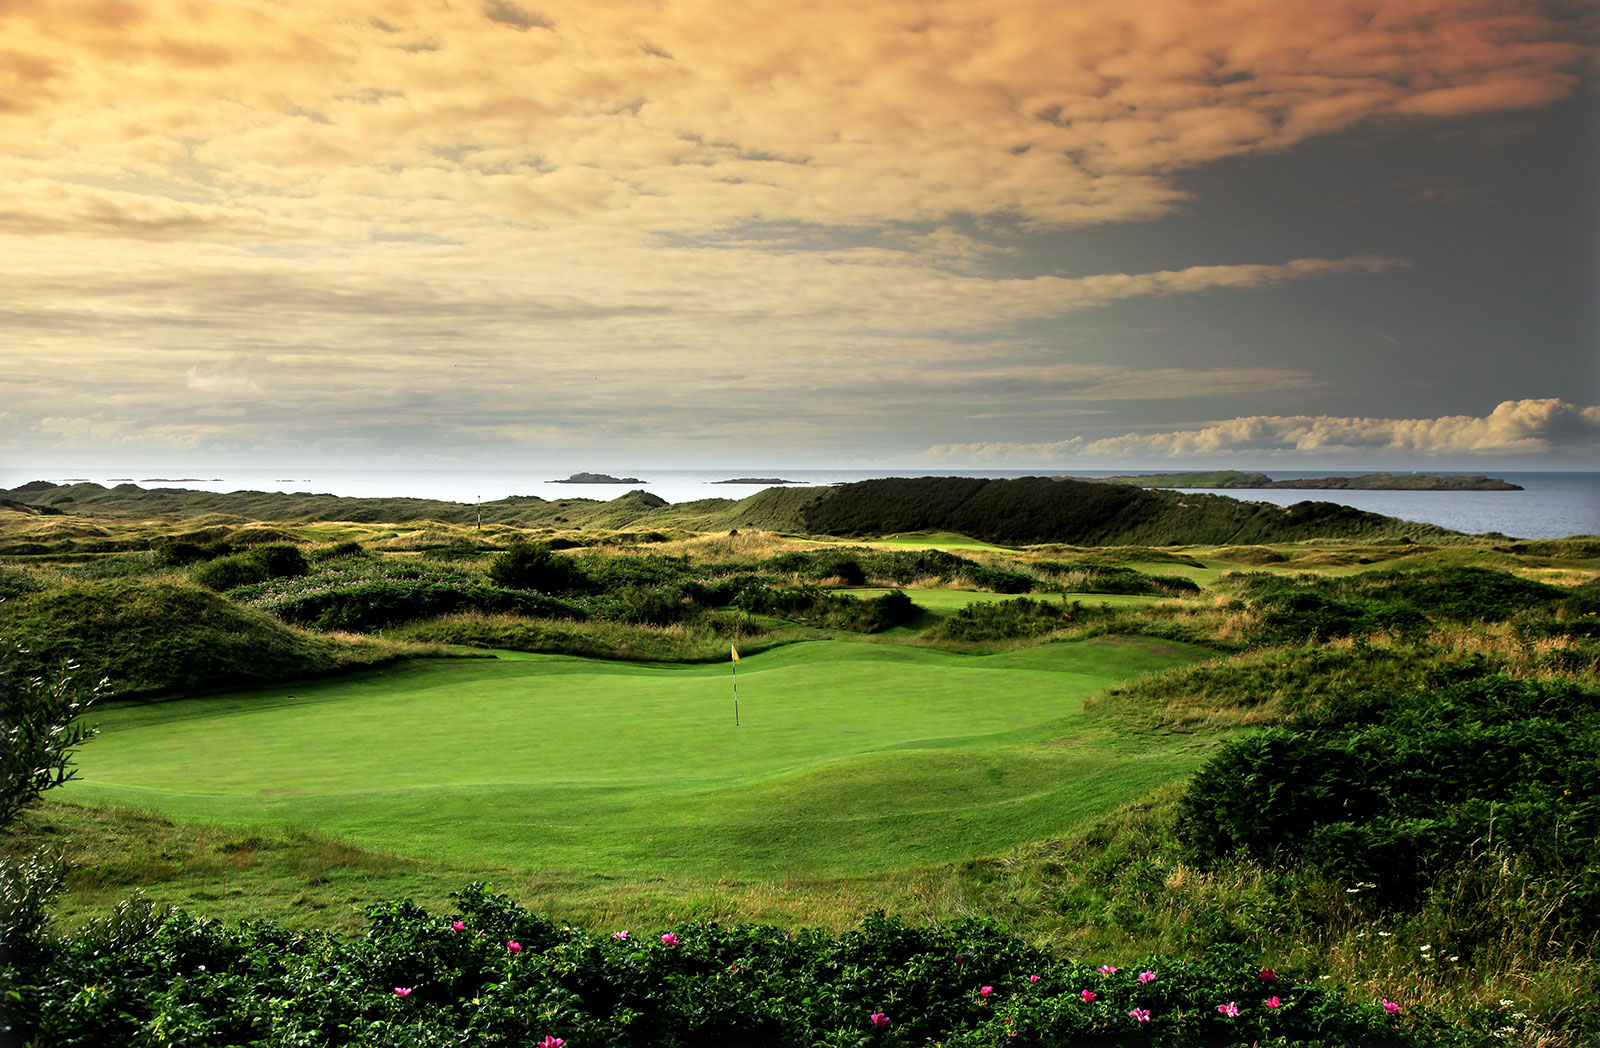 The Open returns to Ireland, and Royal Portrush, in 2019.  Book your Irish Adventure now!